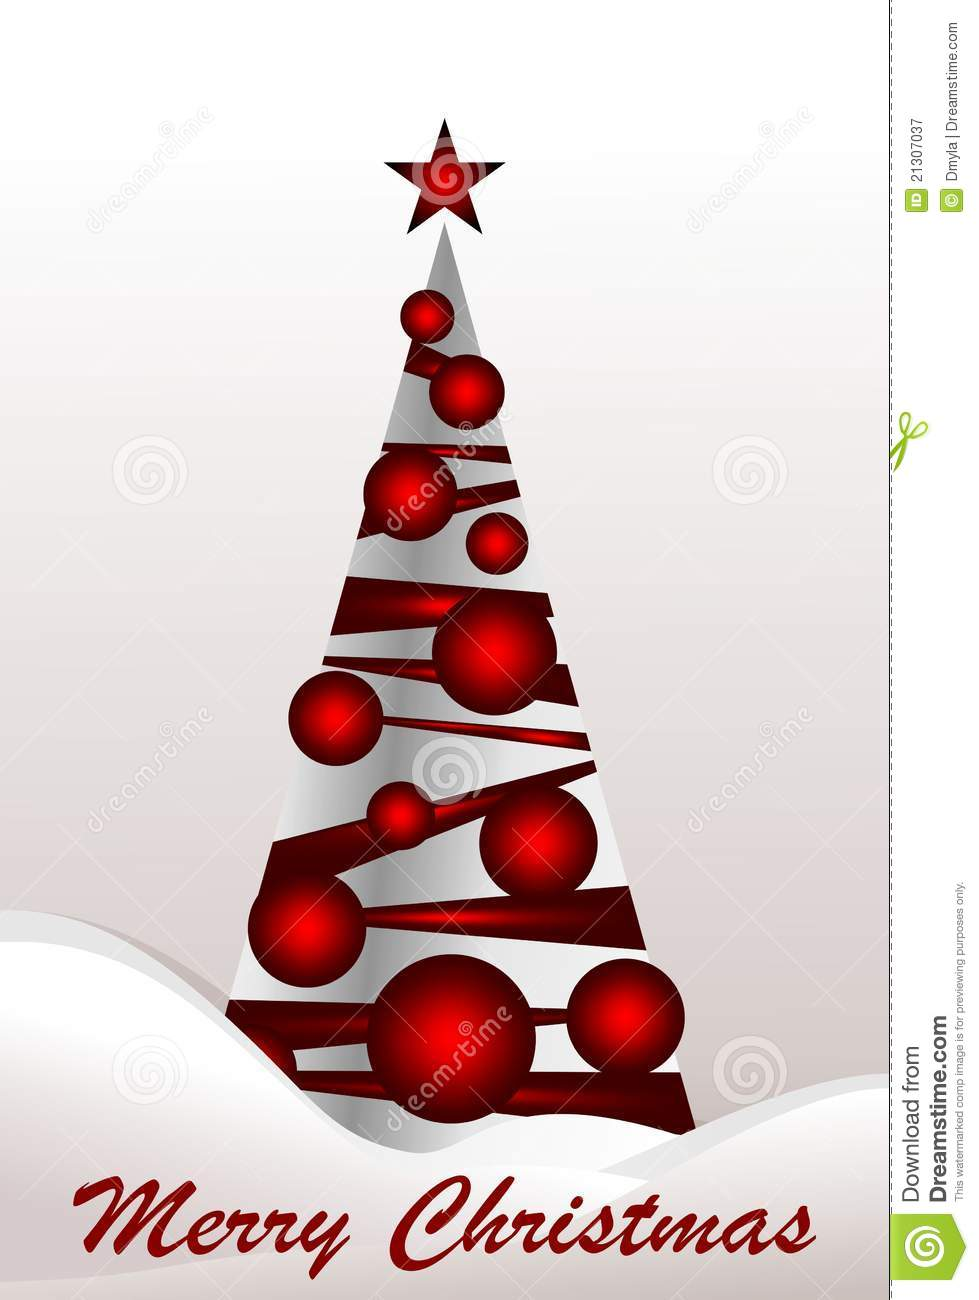 Christmas tree with red balls royalty free stock